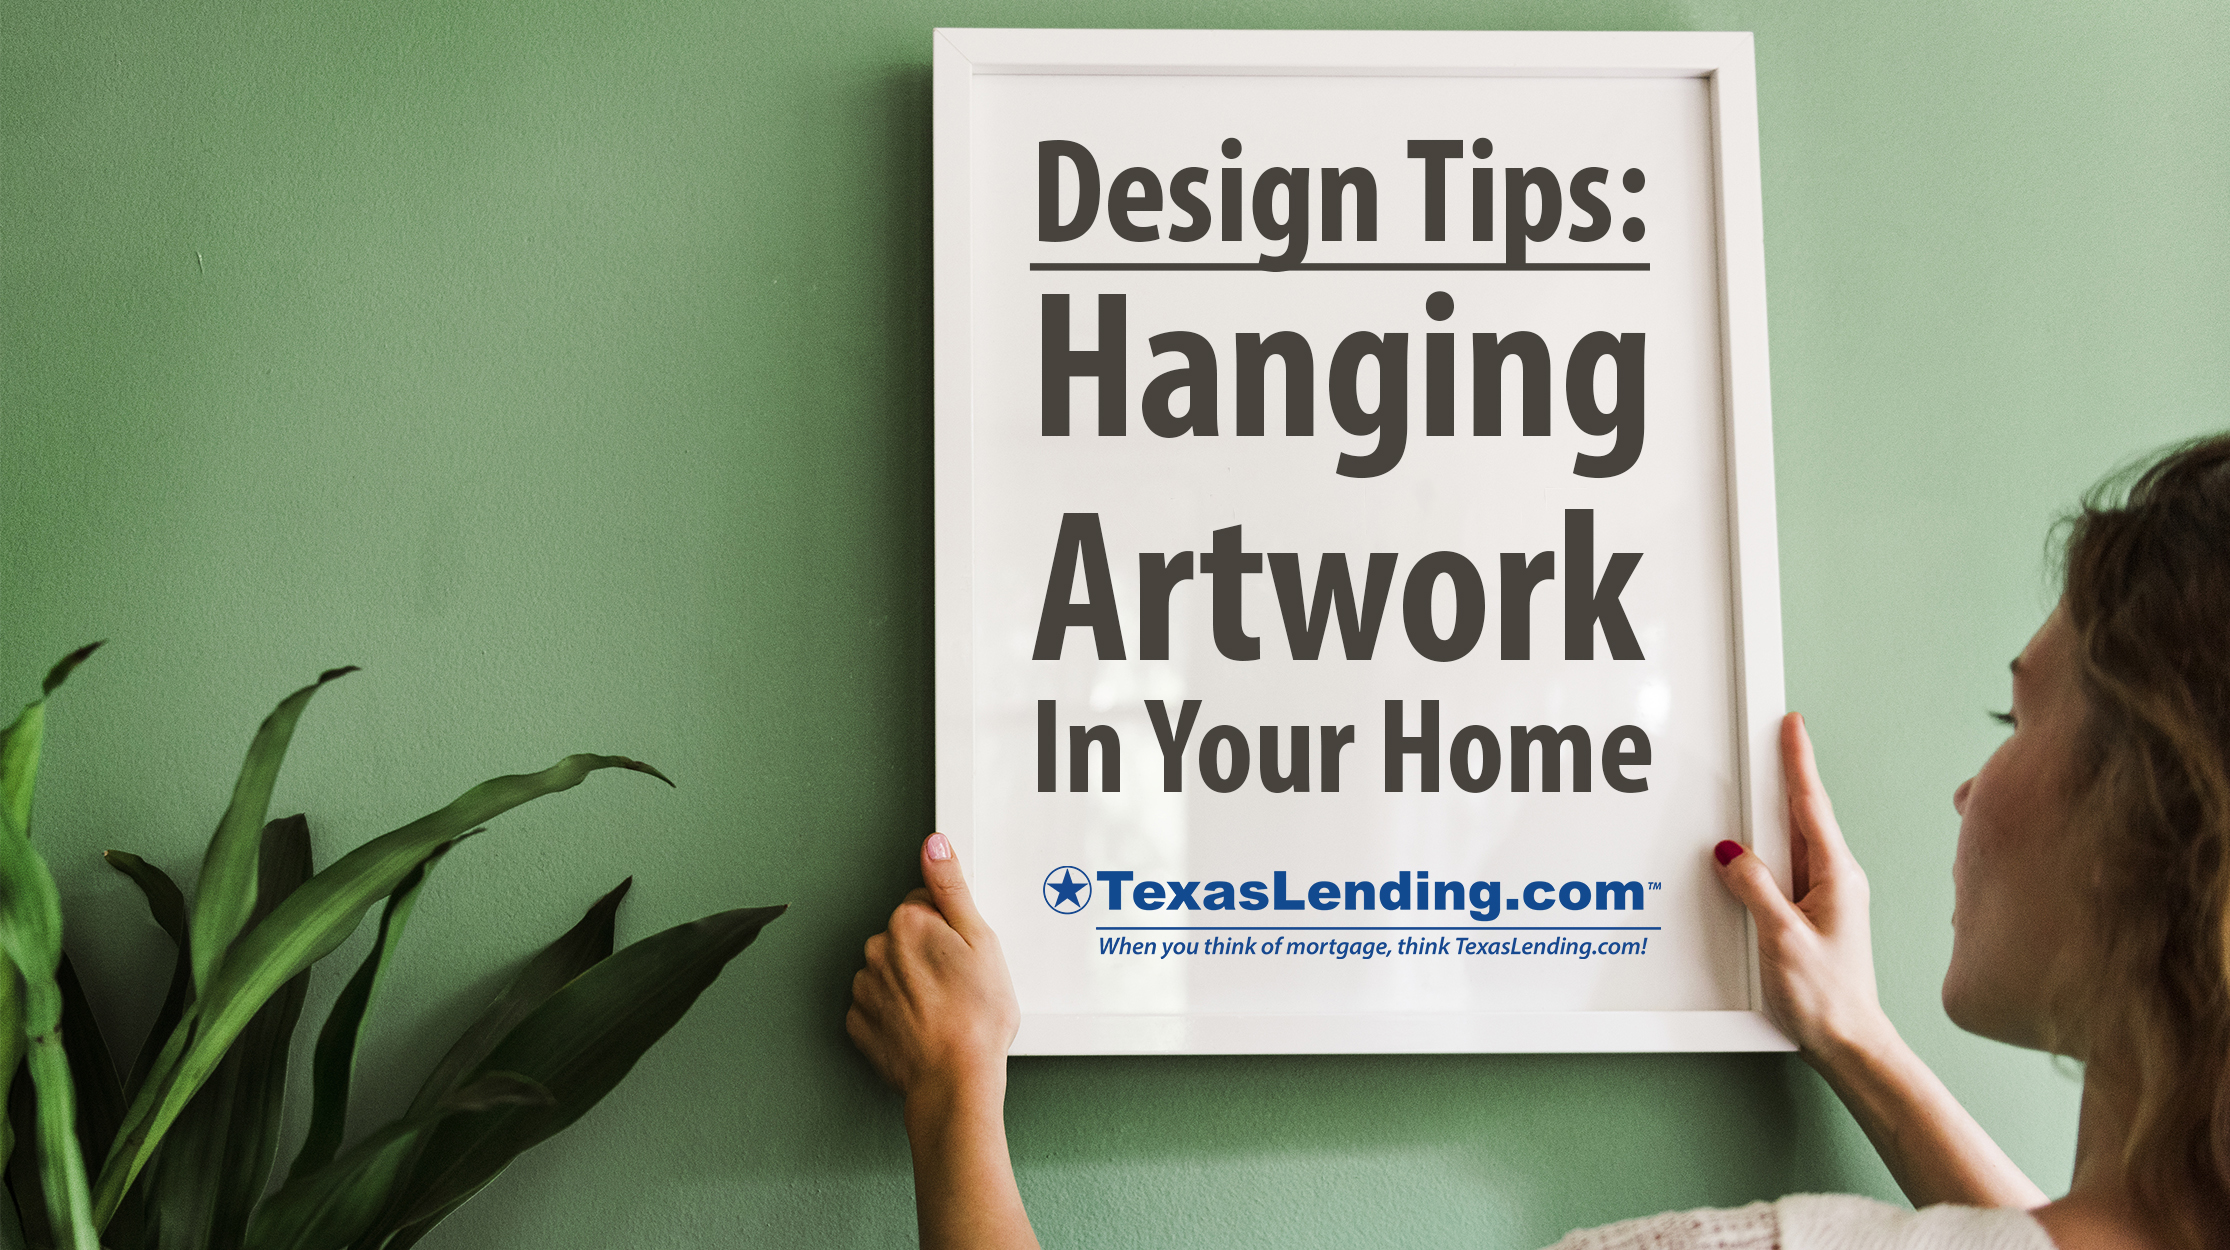 Design tips for hanging artwork in your home